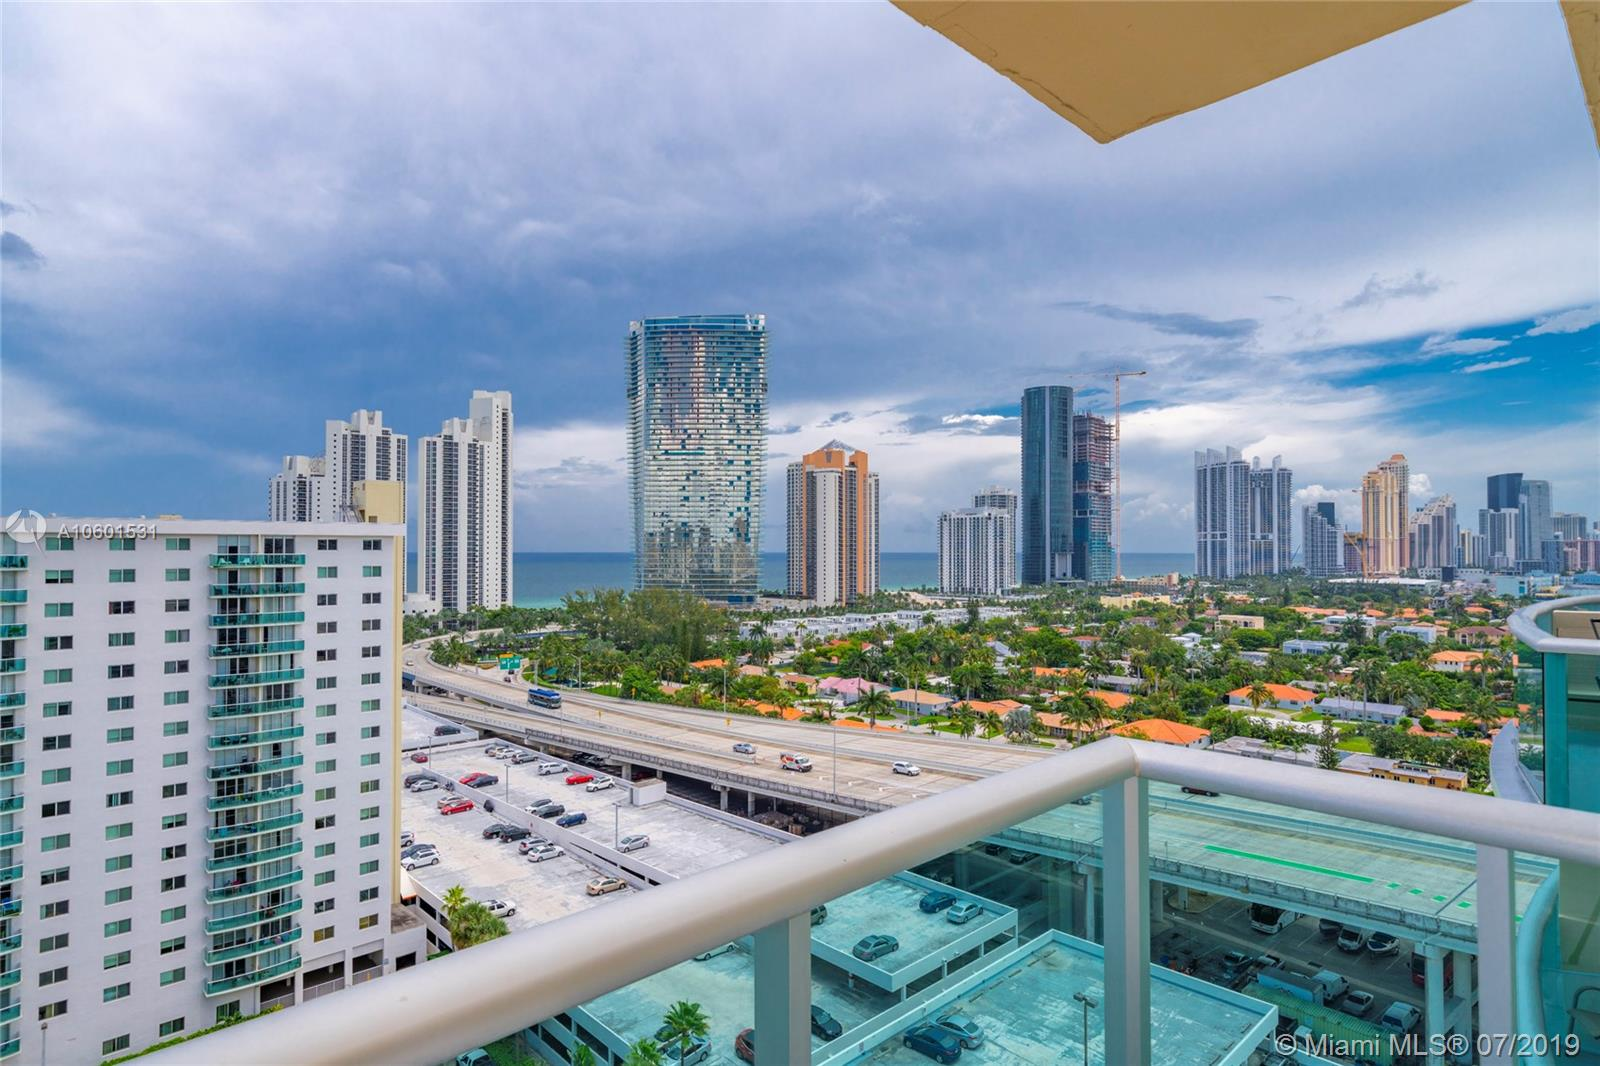 Ocean View A #PH-8 - 19390 Collins Ave #PH-8, Sunny Isles Beach, FL 33160